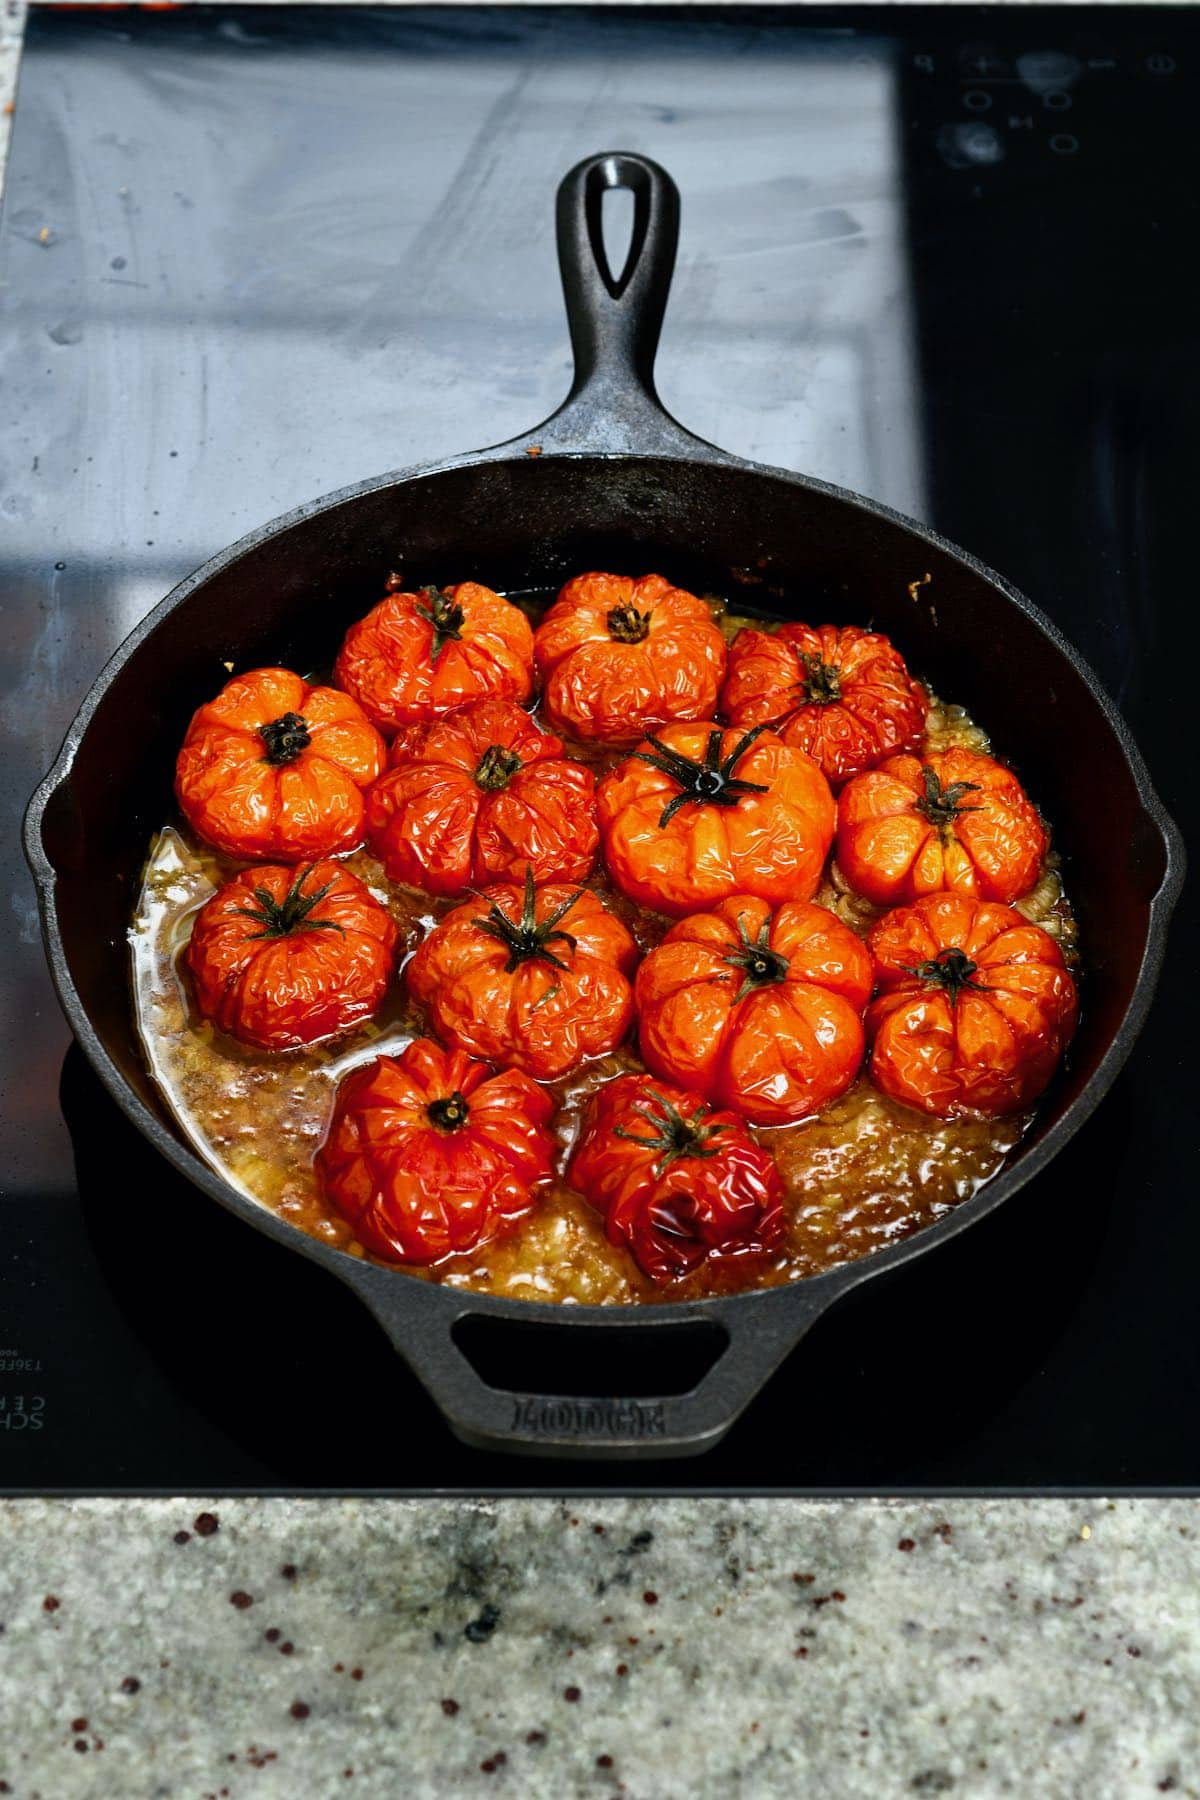 Roasted tomatoes in a skillet